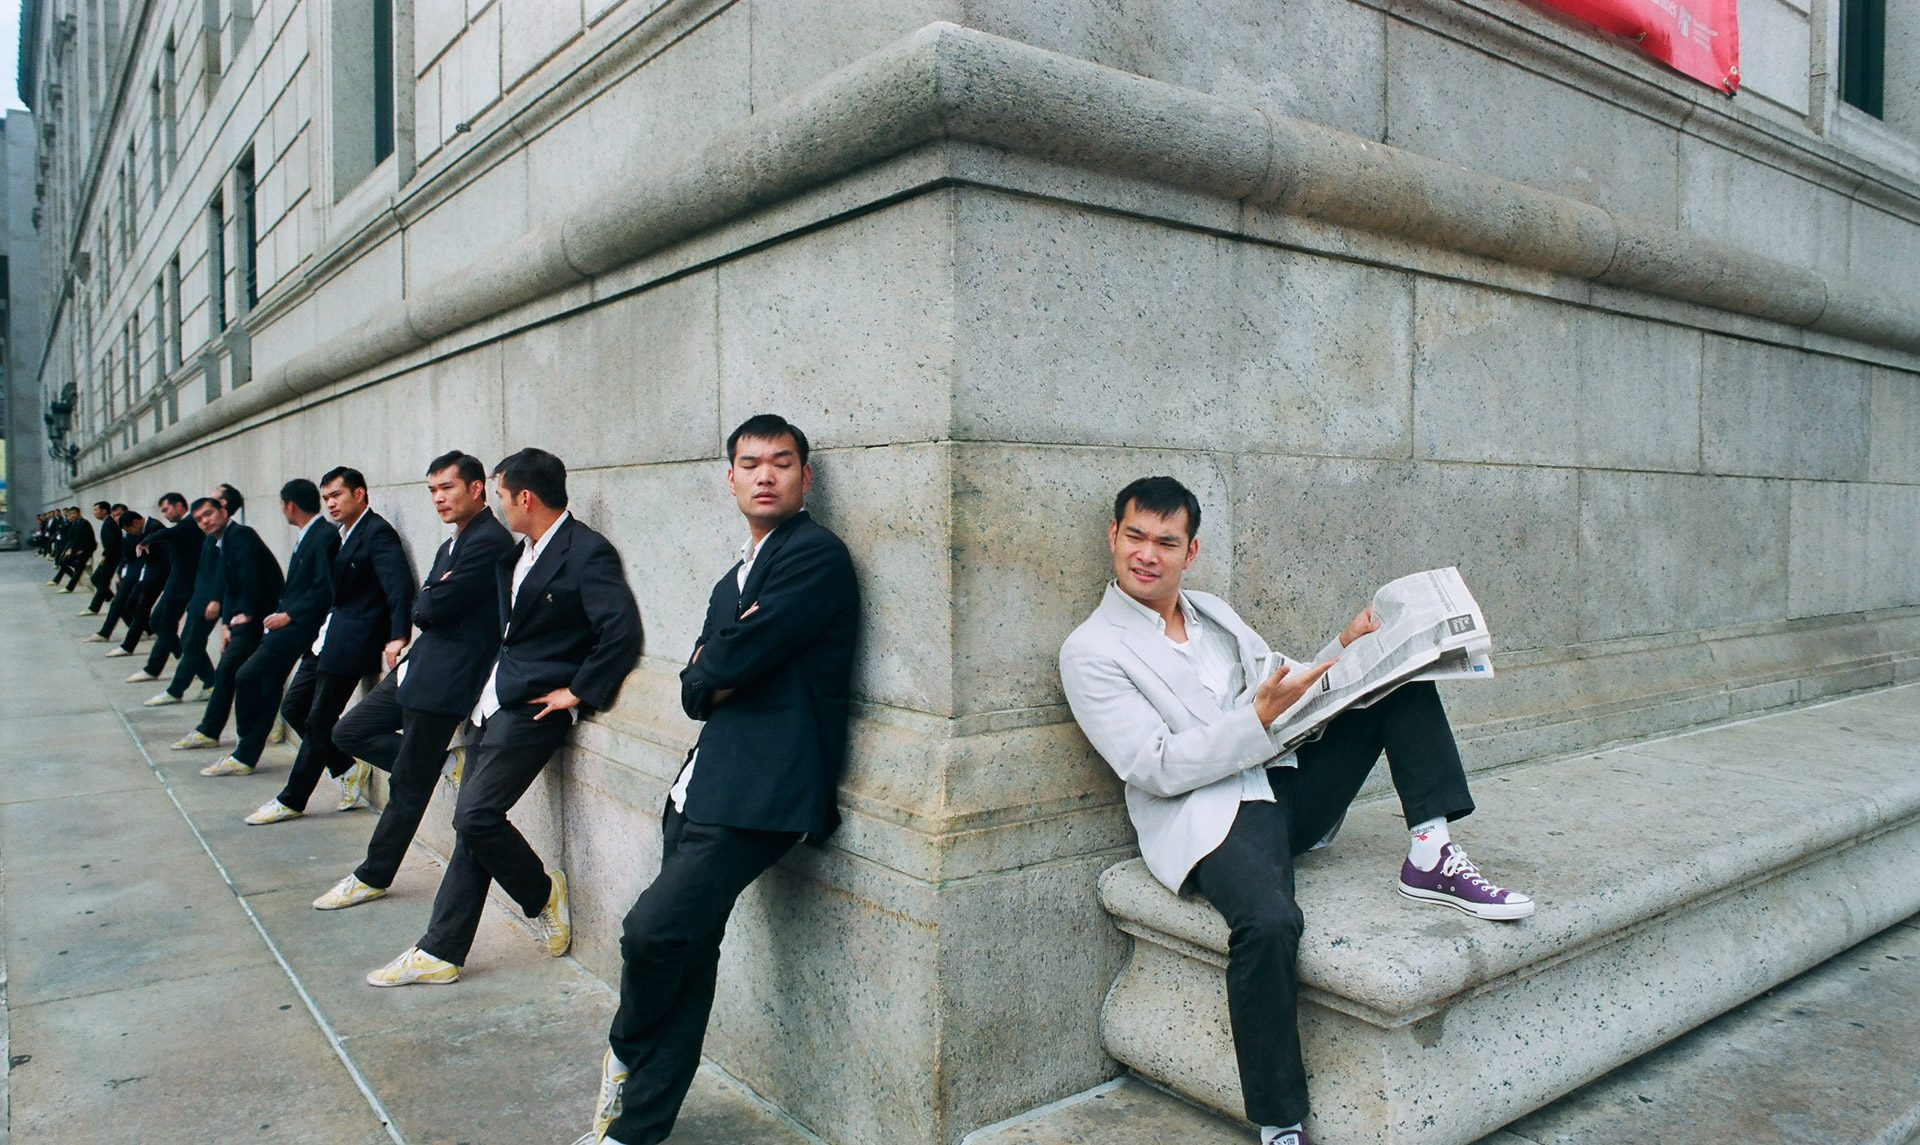 An Asian man in white reading a newspaper on a corner, a line of the same Asian man in black looking bored around the corner.